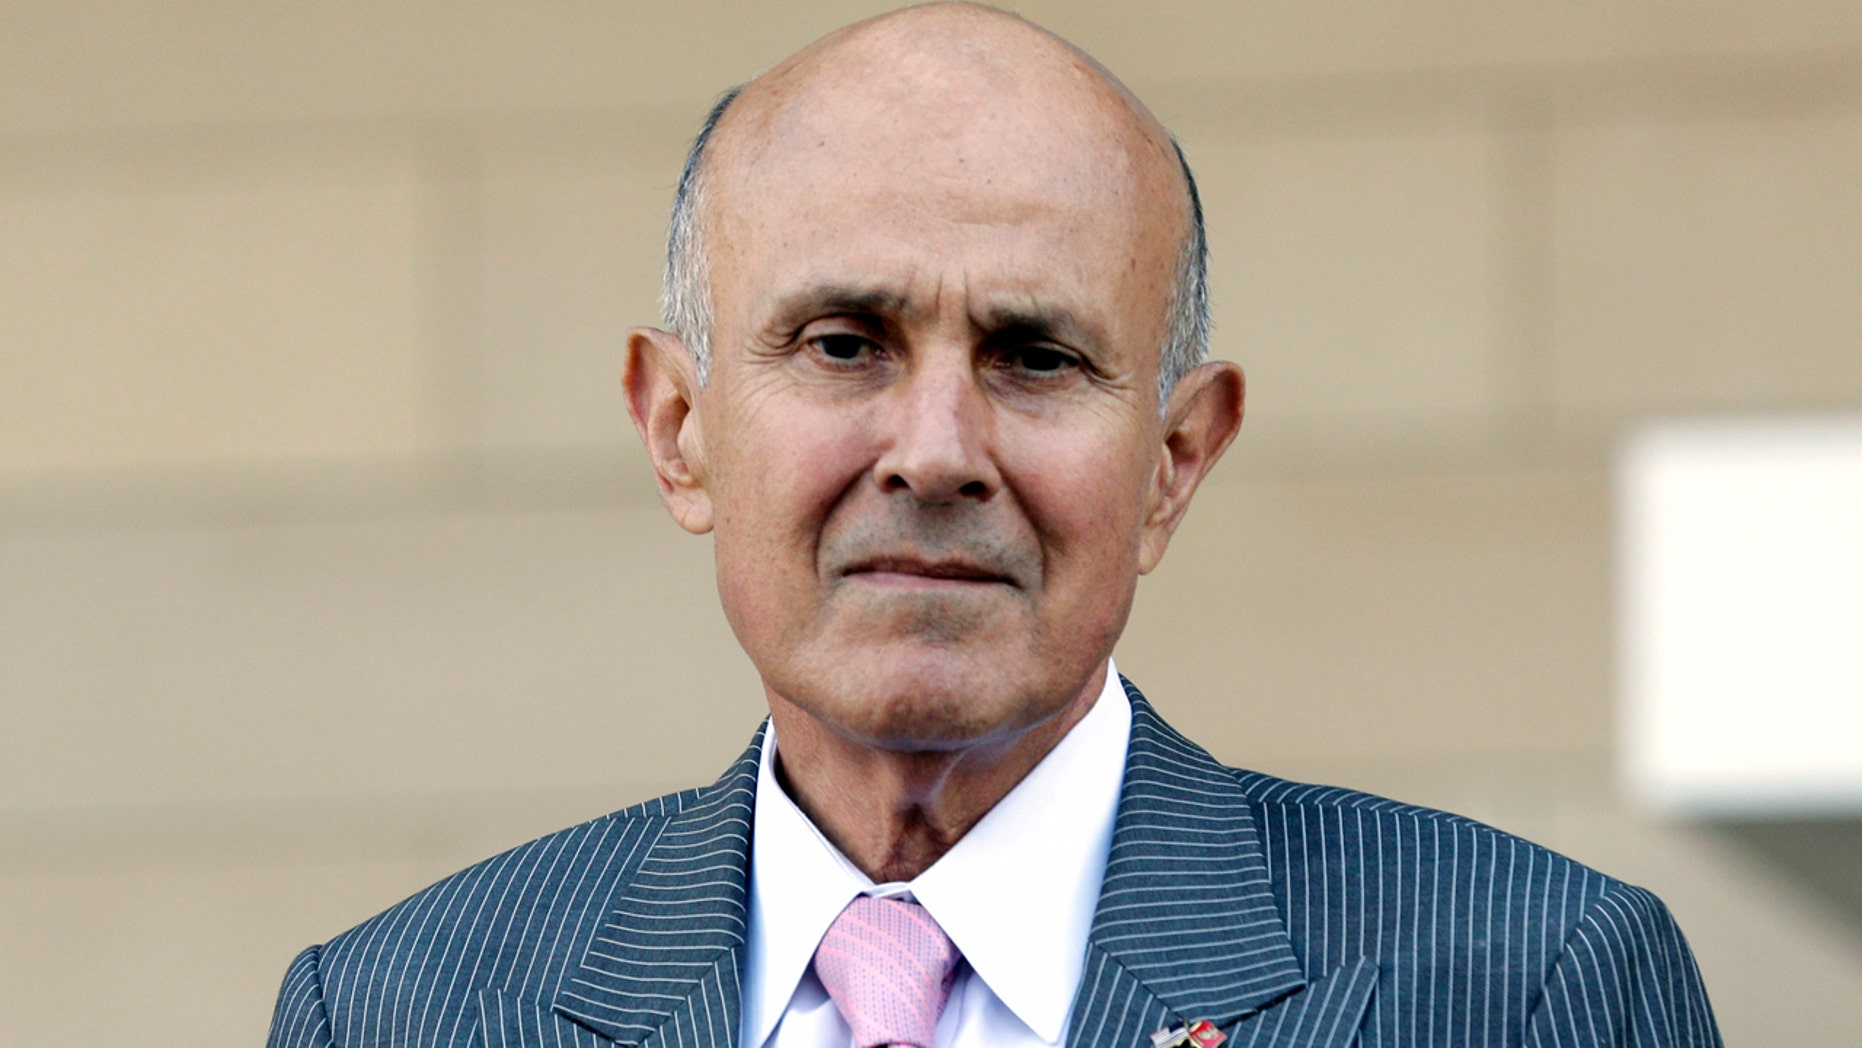 Former Los Angeles County Sheriff Lee Baca leaves federal court in Los Angeles Monday